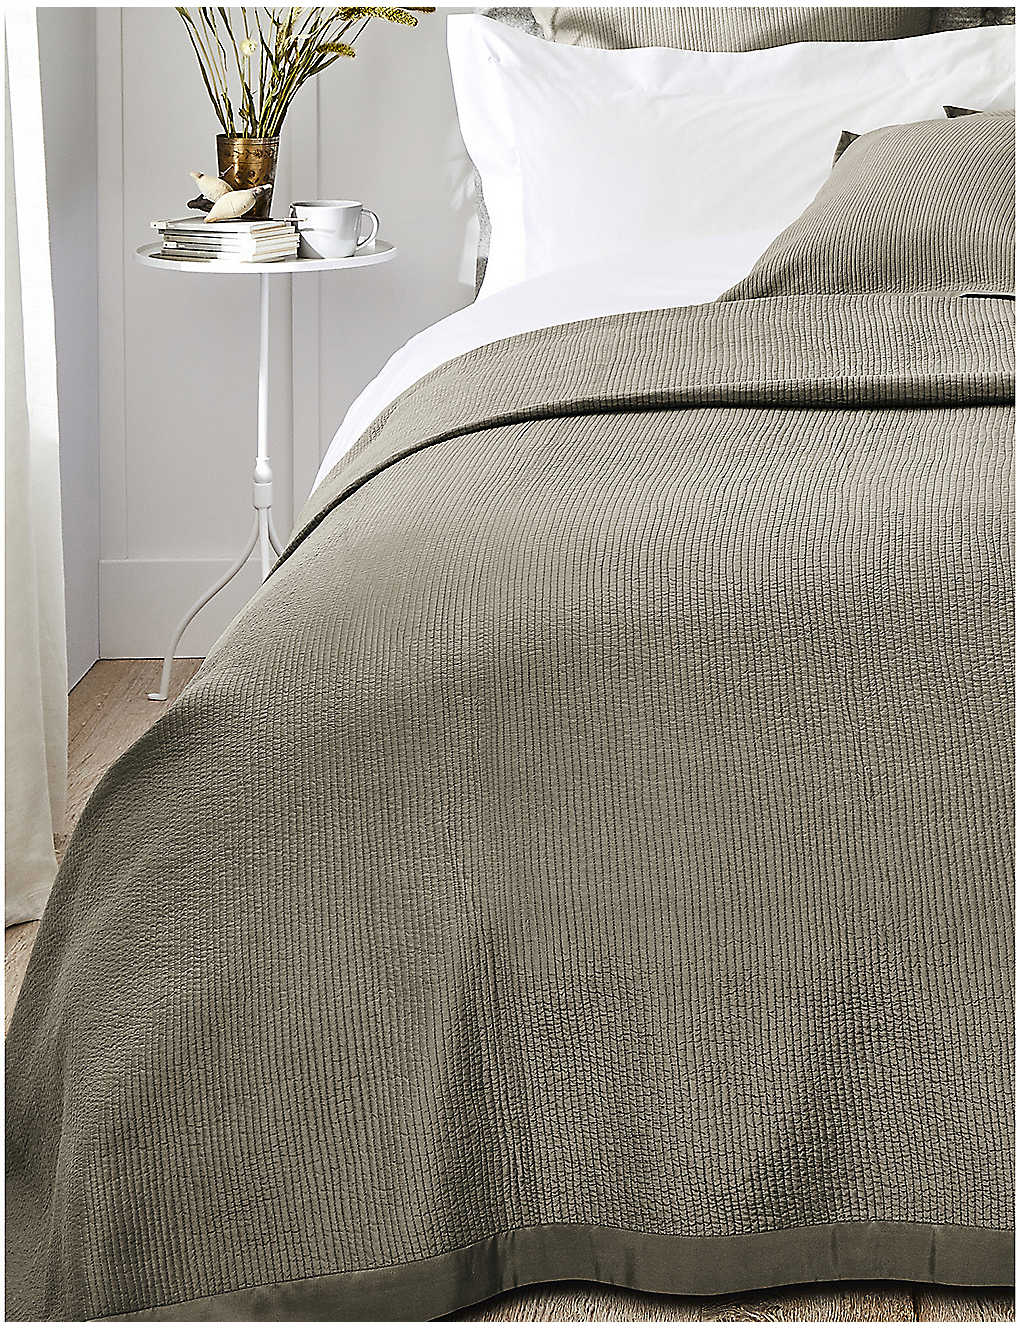 THE WHITE COMPANY: Hampstead cotton and silk duvet cover 215cm x 250cm